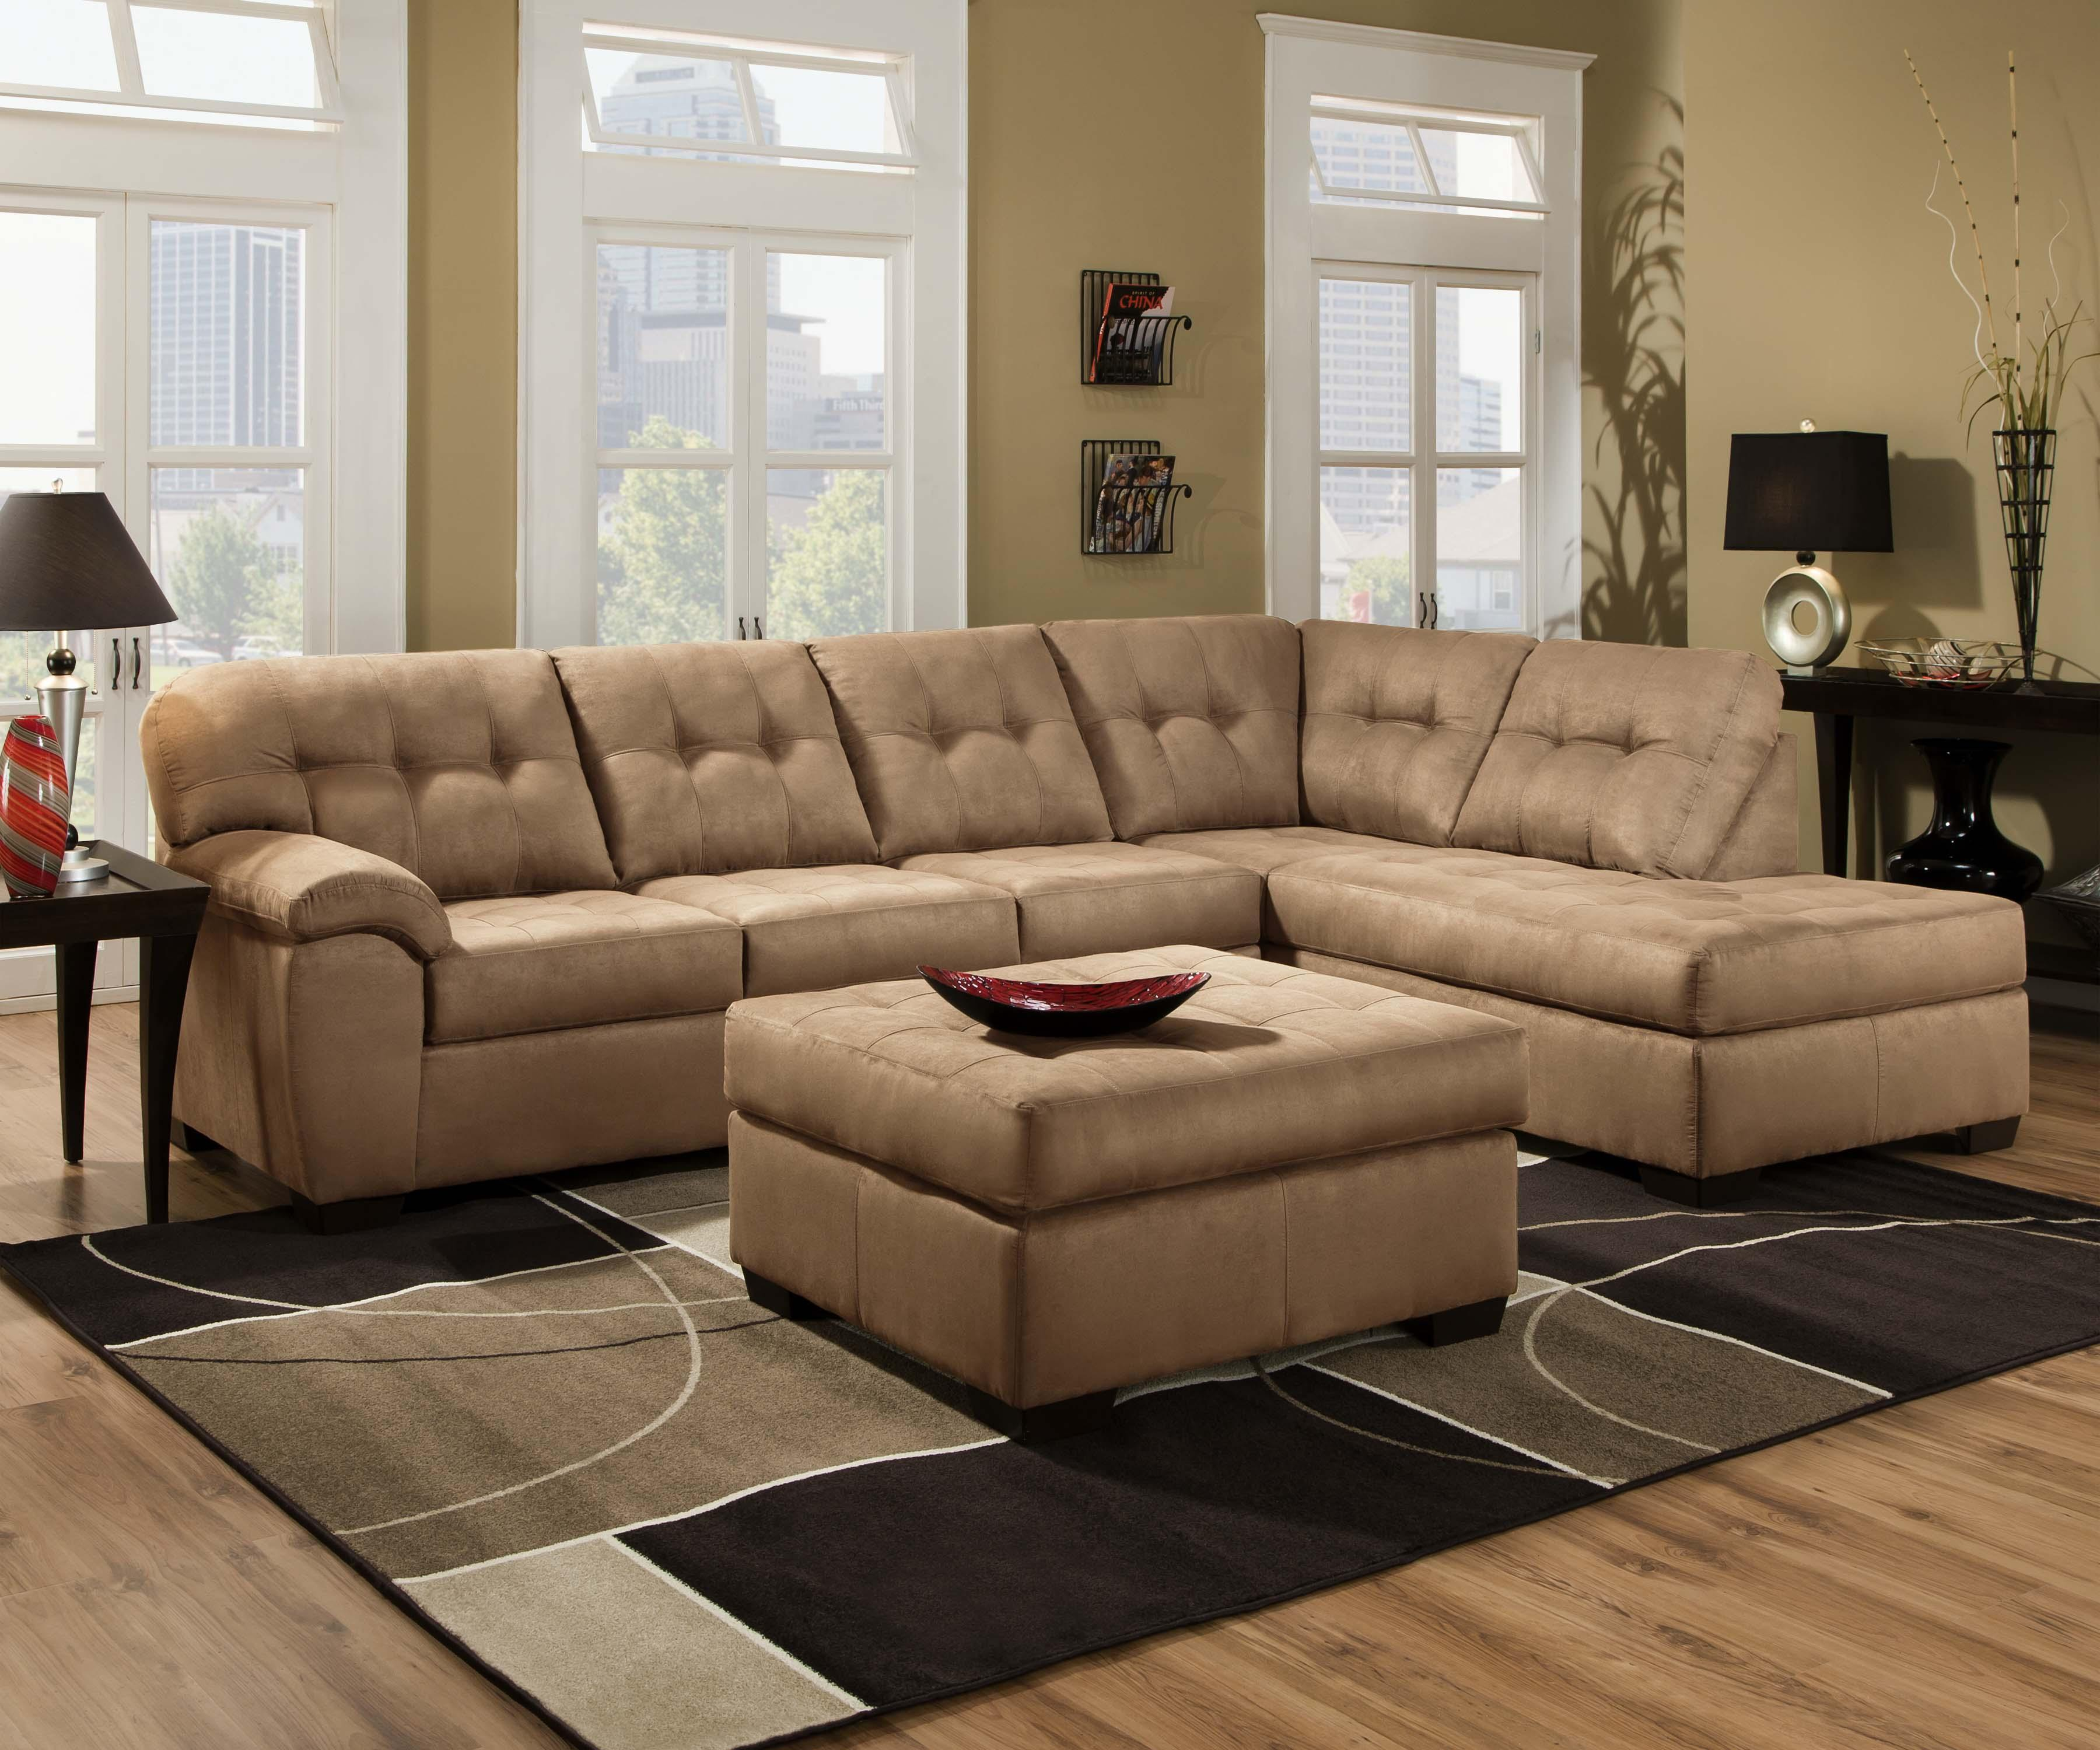 United Furniture Industries 9558 2 Piece Sectional Sofa with Chaise - Item Number 9558 LAF : 2 piece sectional couch - Sectionals, Sofas & Couches